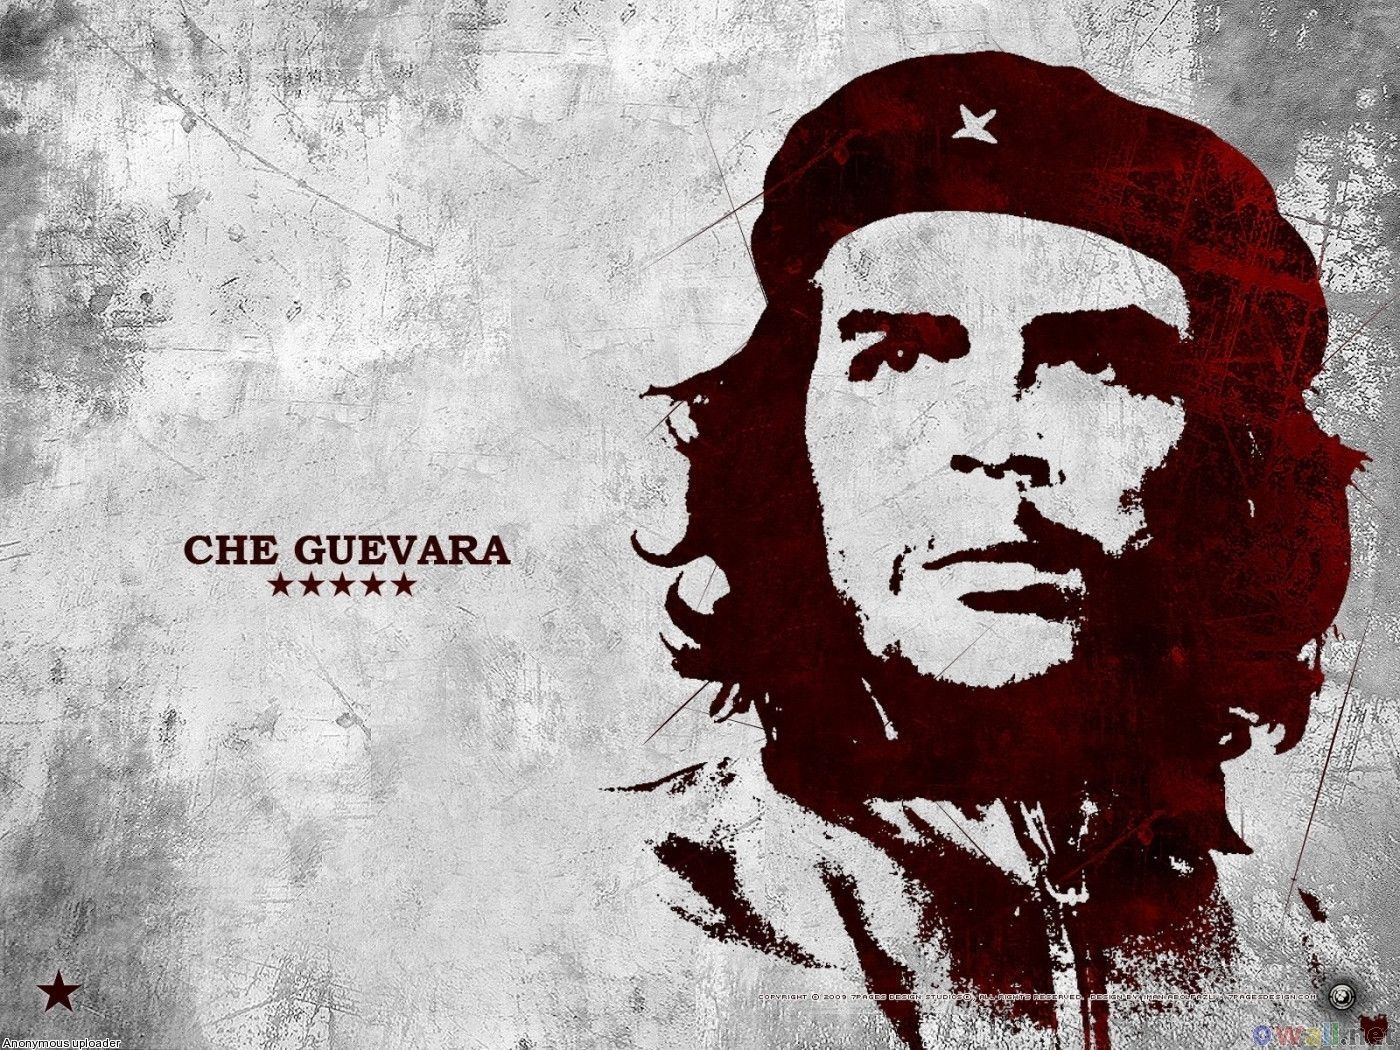 Che Guevara Wallpapers For Mobile